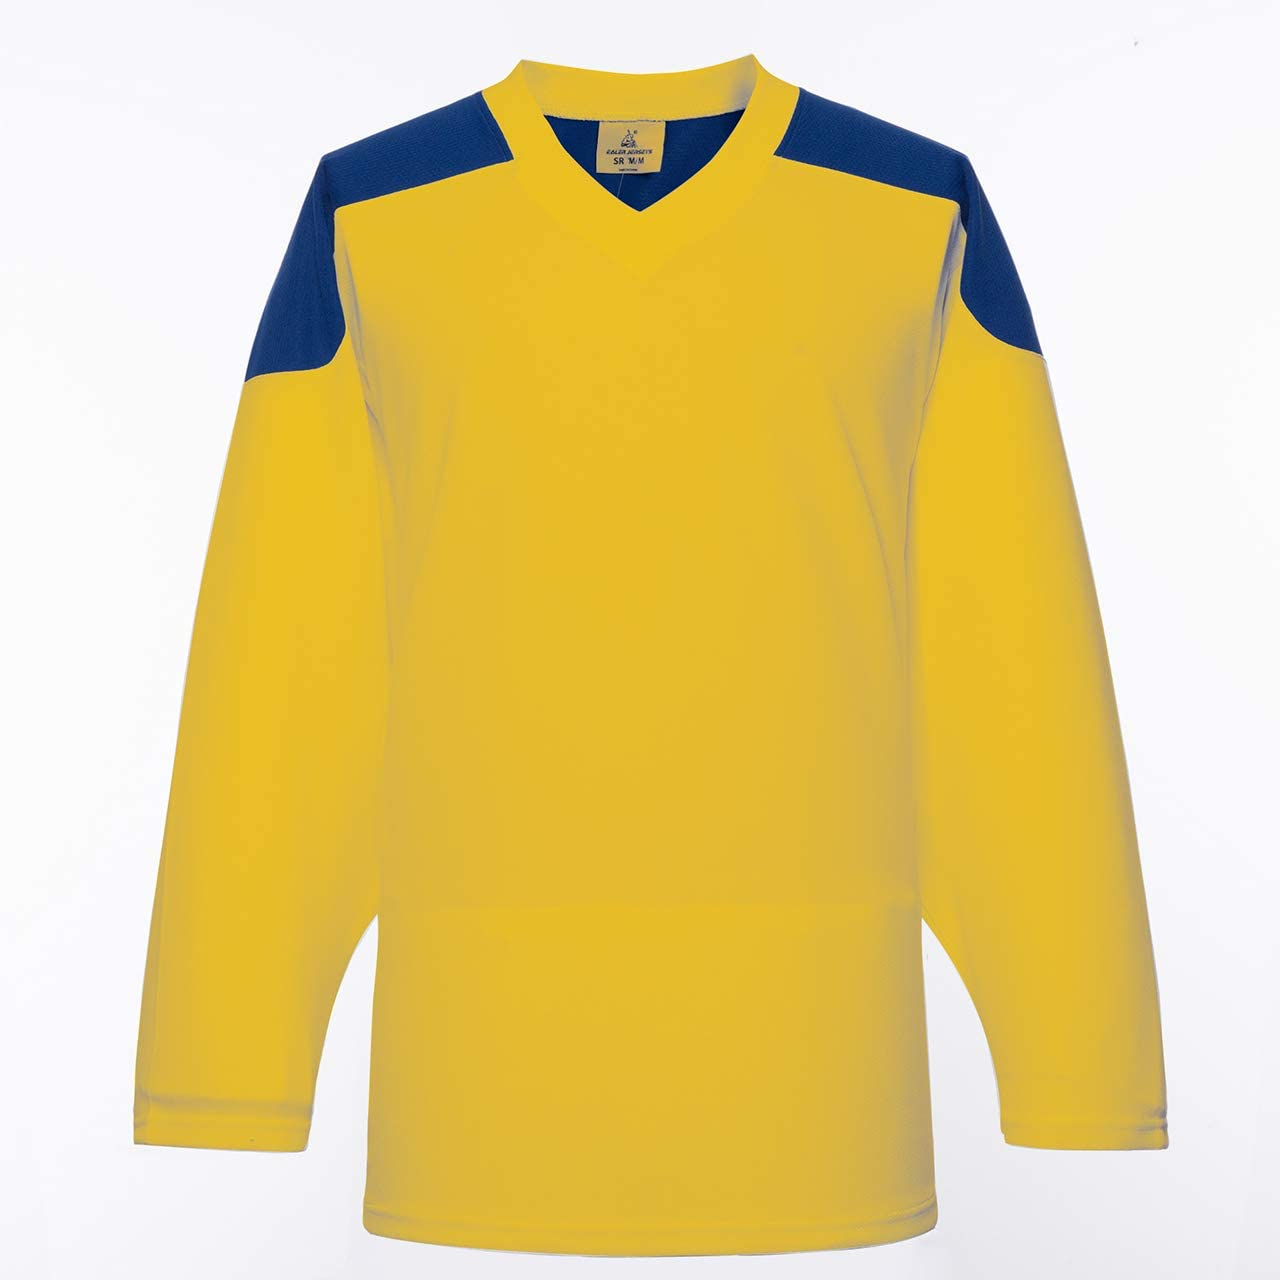 Adult and Youth Senior and Junior EALER H100 Series Blank Ice Hockey Practice Jersey League Jersey for Men and Boys